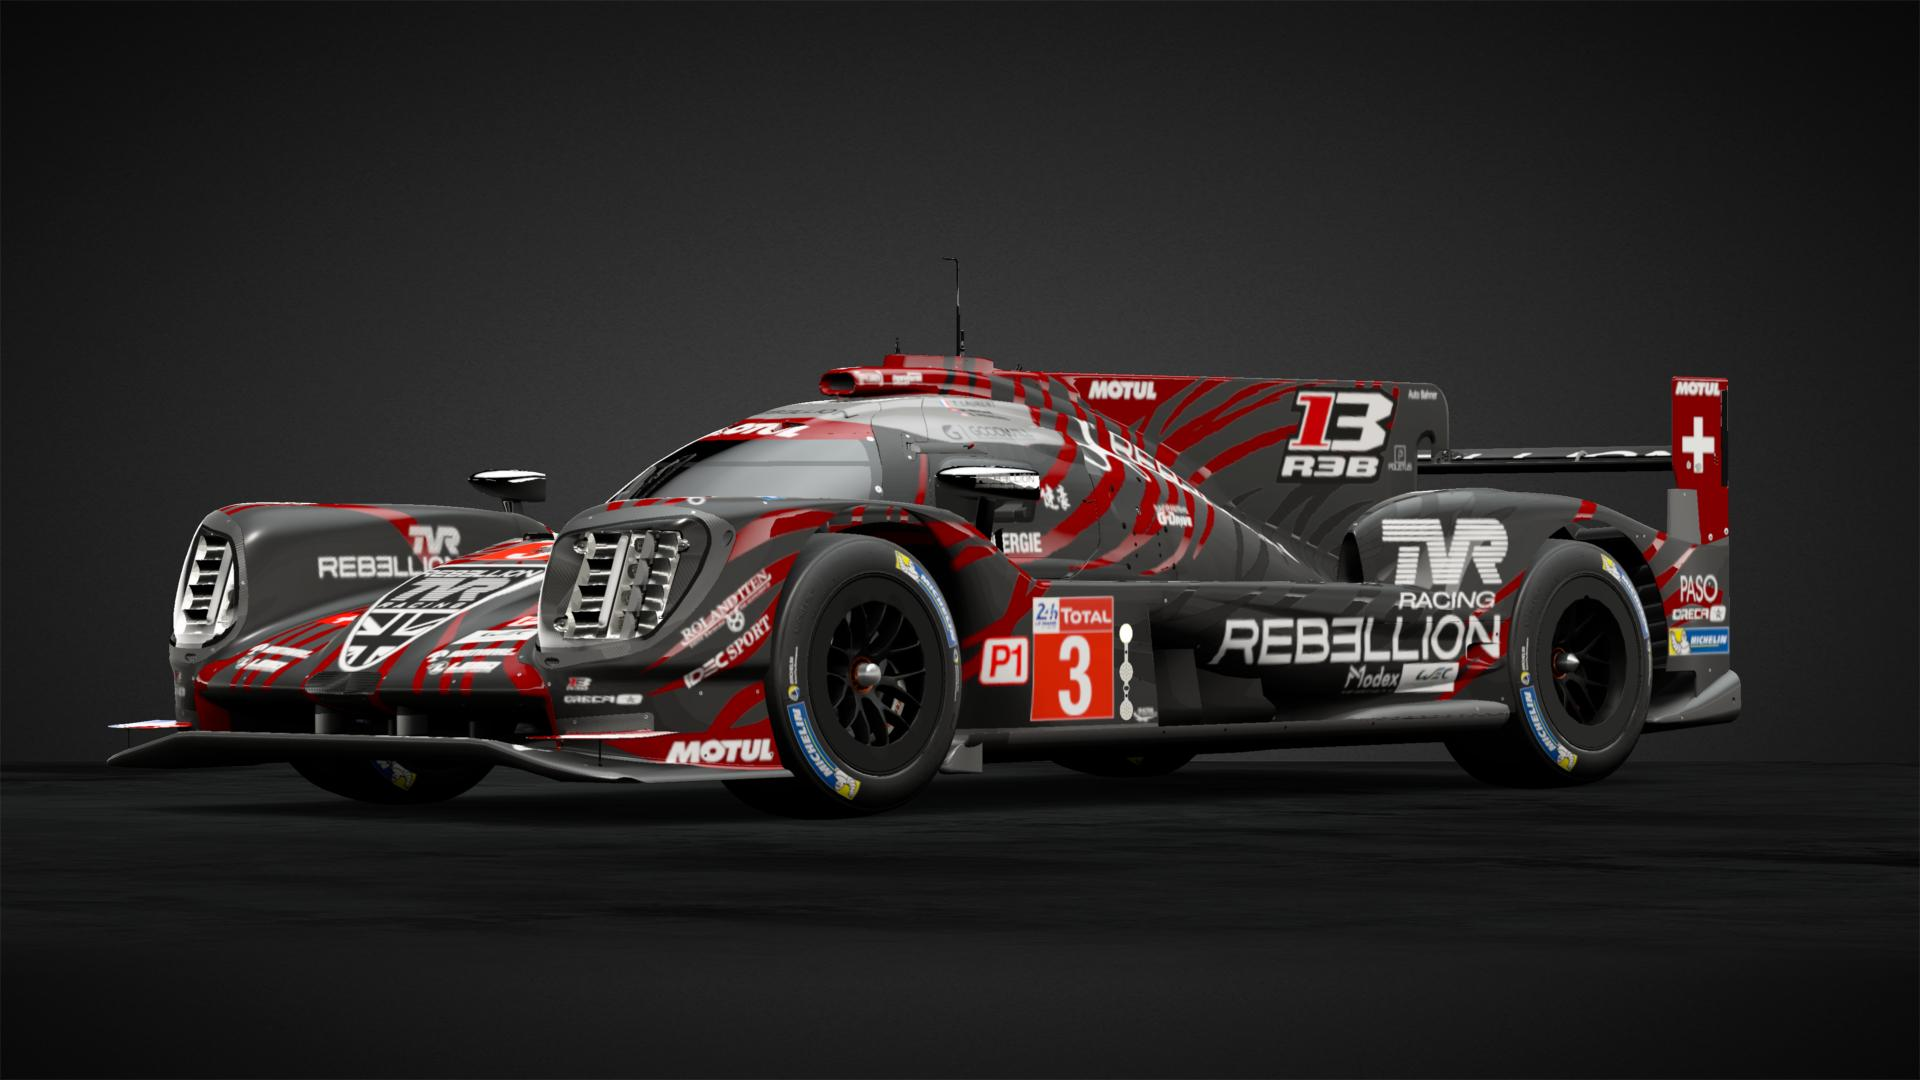 3 Rebellion Racing 2018lemans Car Livery By Brazell42 Community Gran Turismo Sport